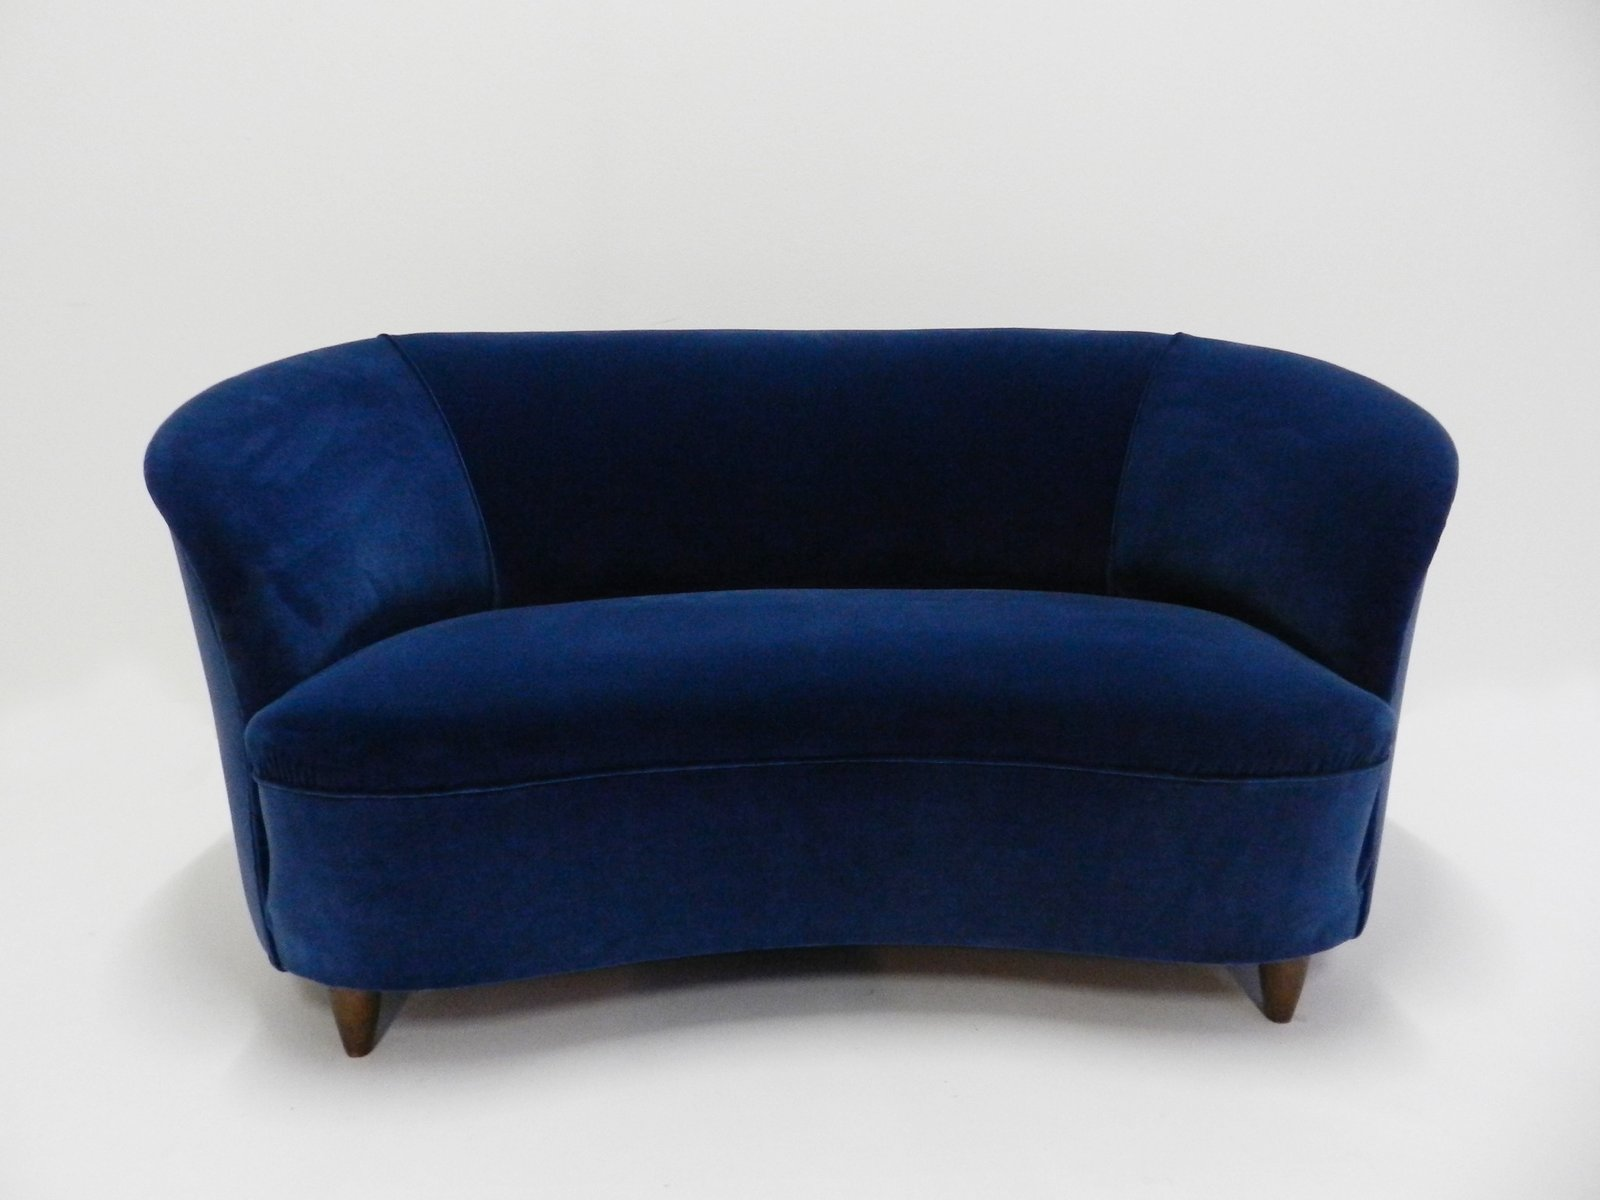 Italian Mid Century Blue Velvet Curved Loveseat For Sale